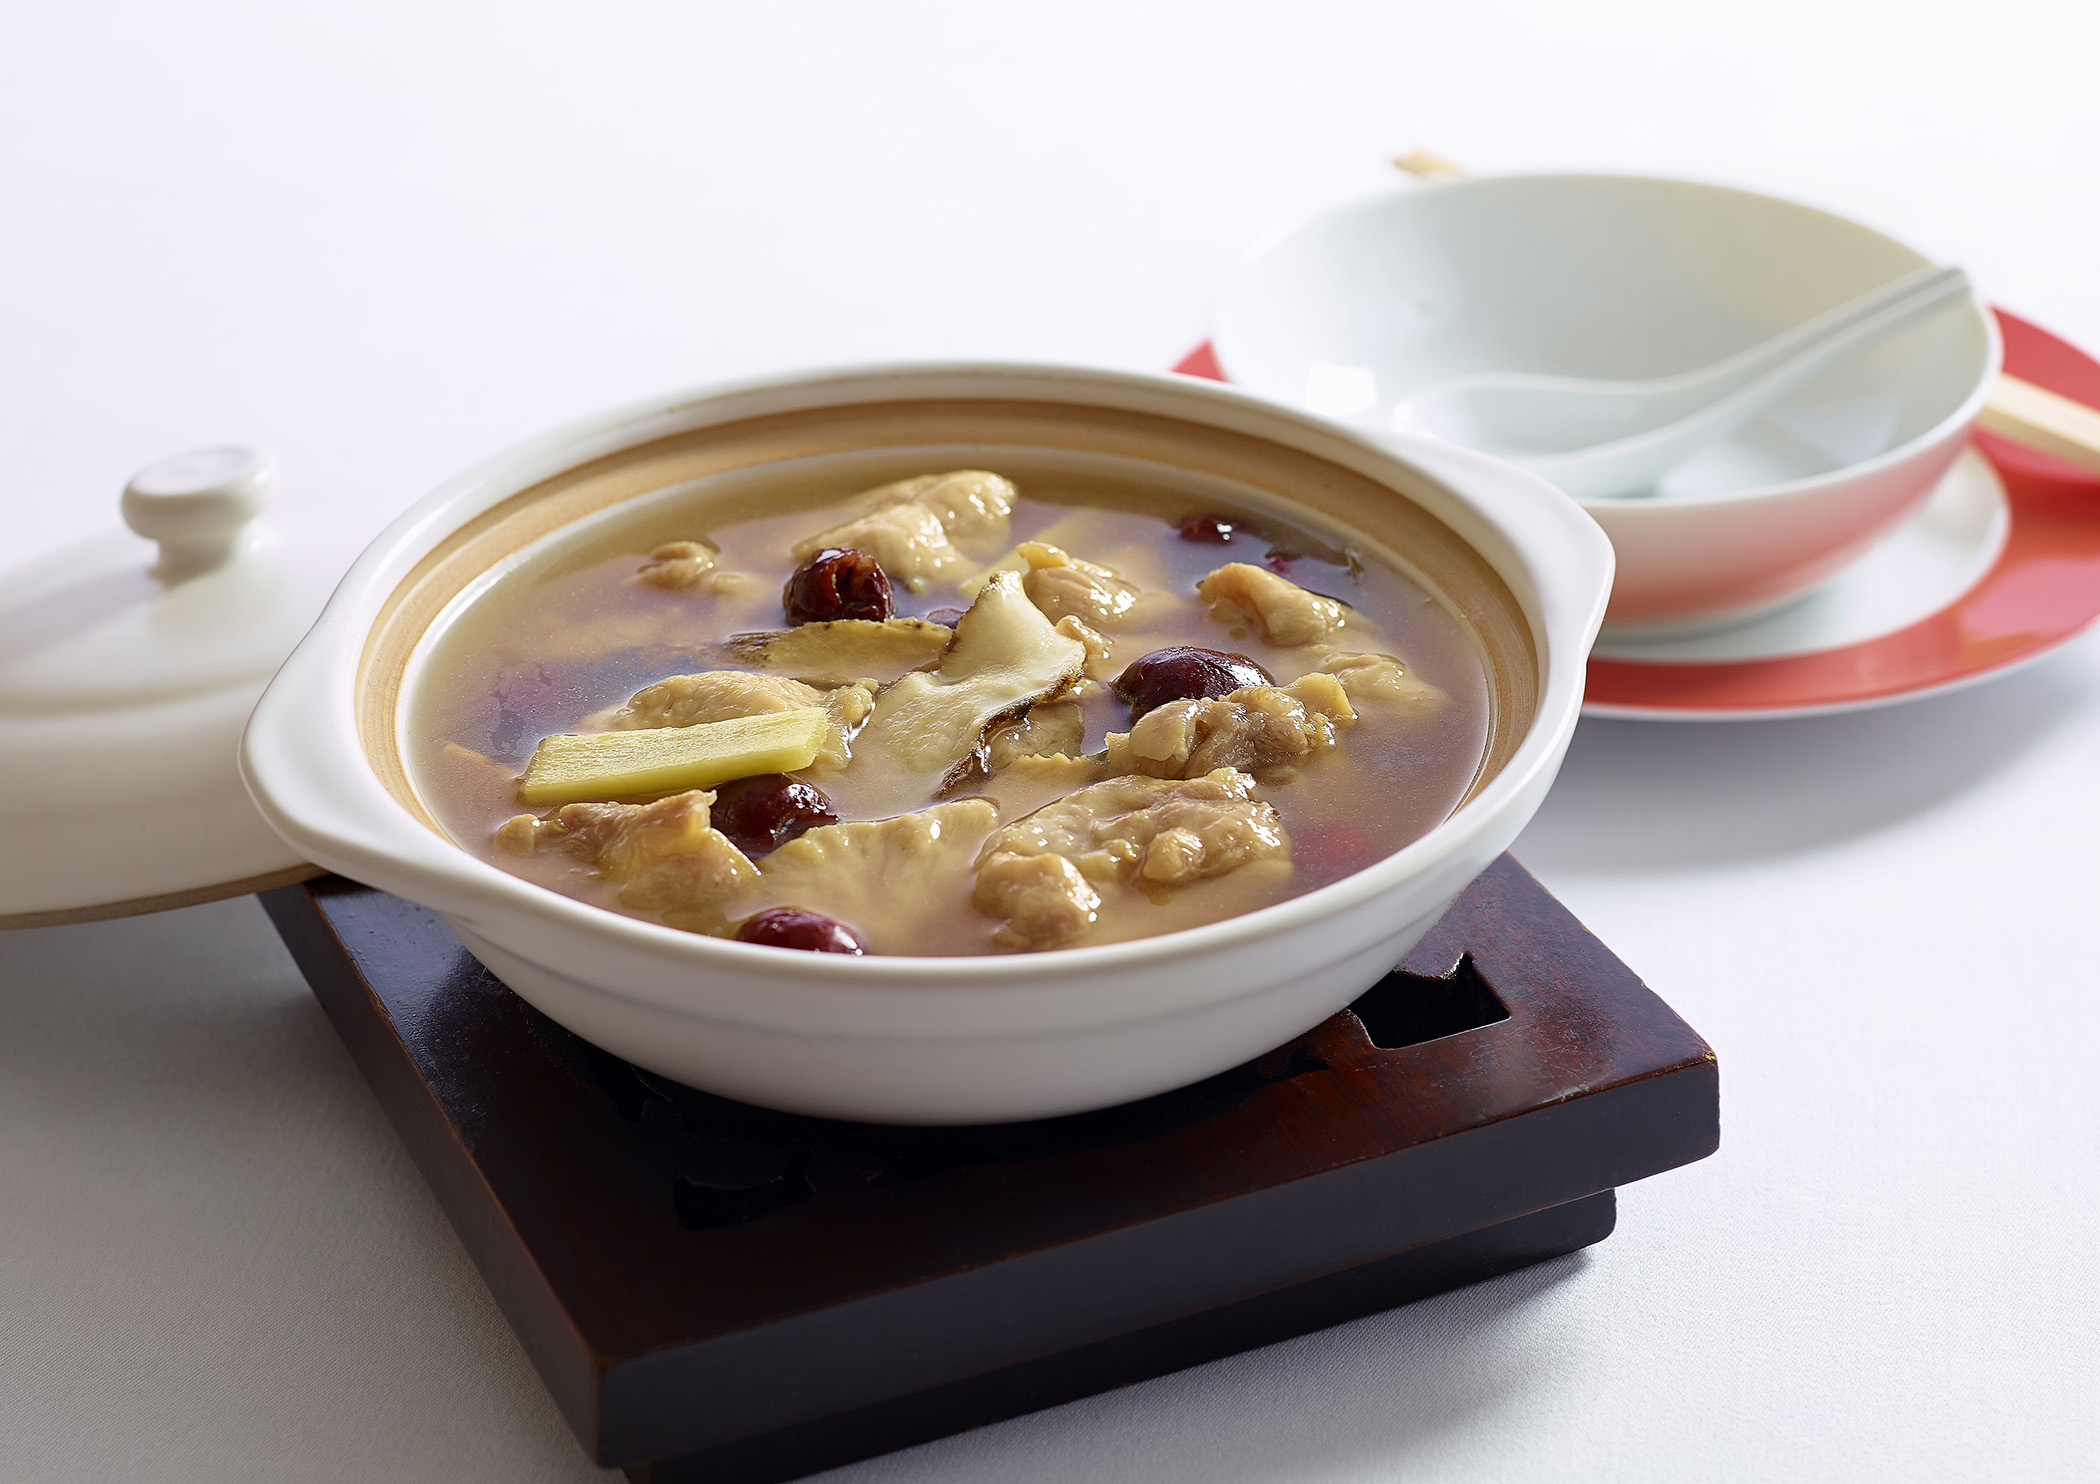 Warm up with a claypot chicken with ginseng, red dates and ginger.